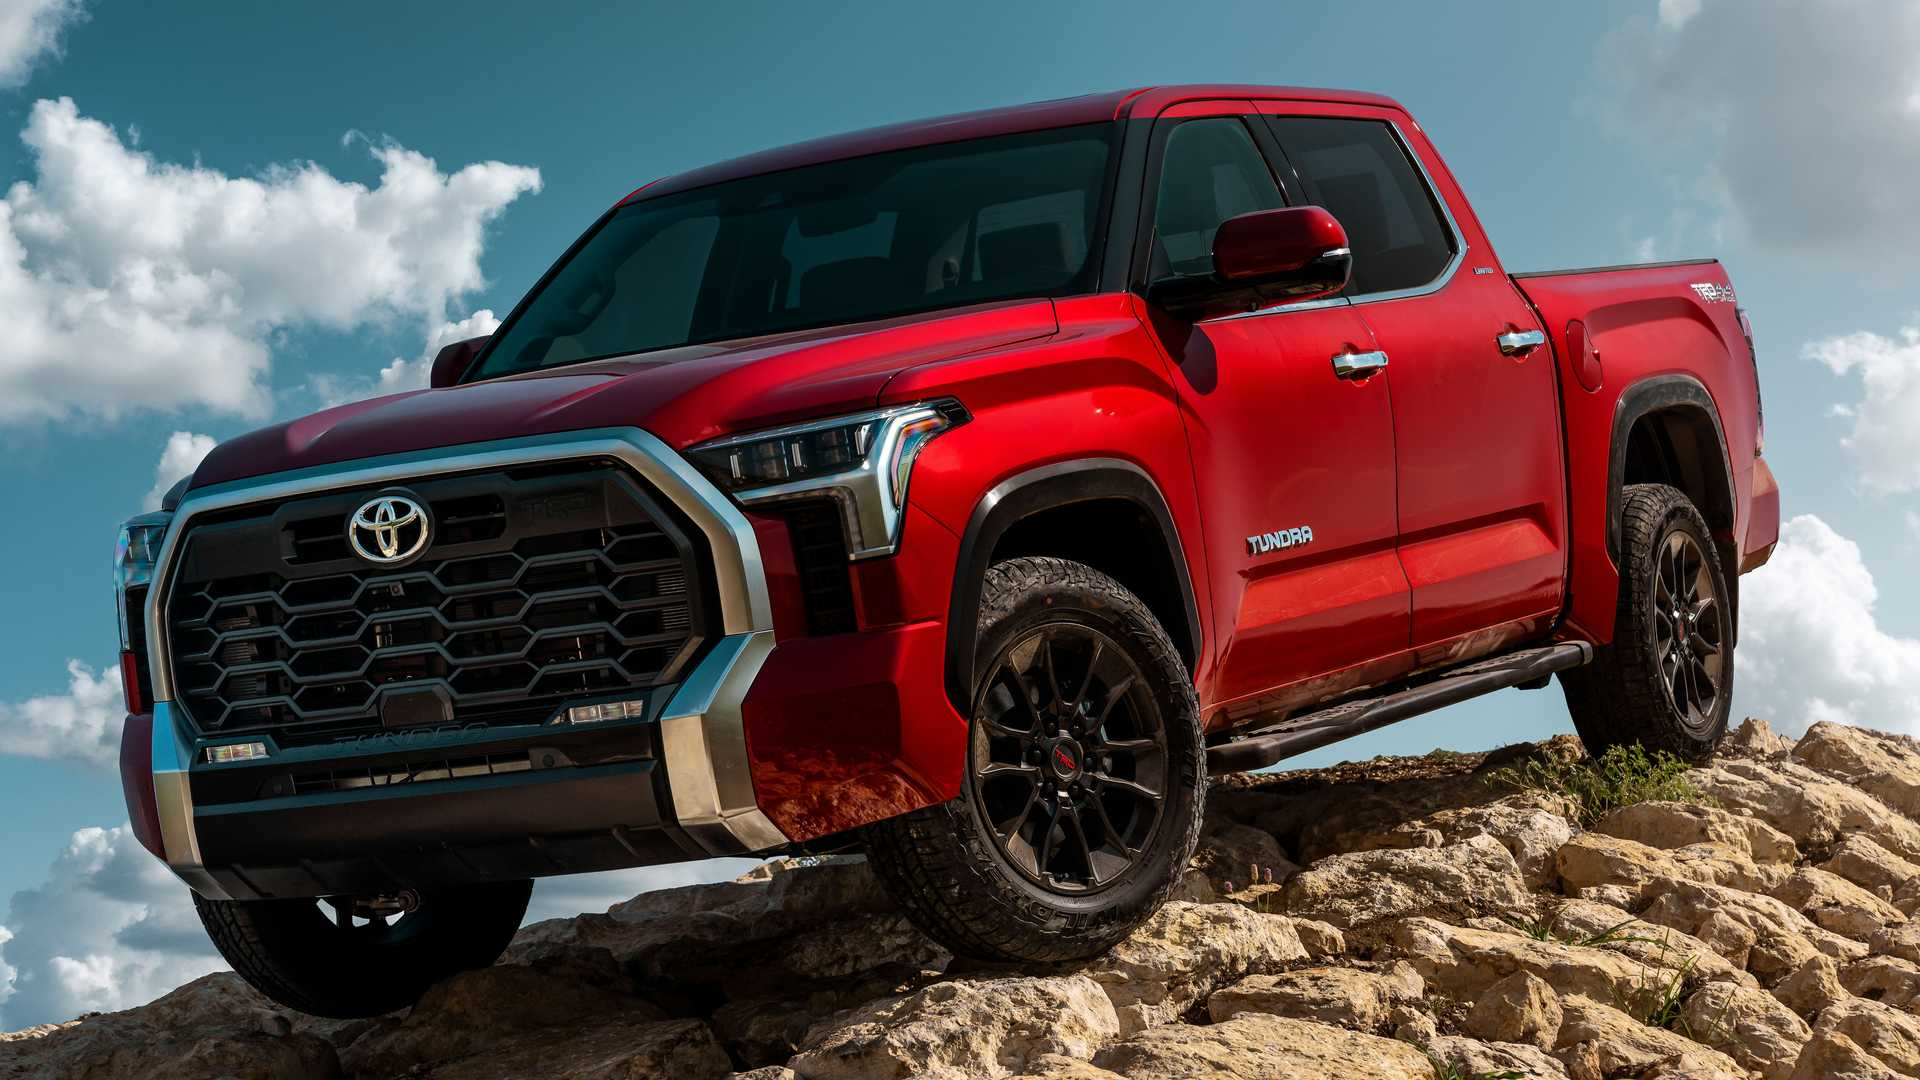 2022 Toyota Tundra Limited TRD off-road front quarter exterior